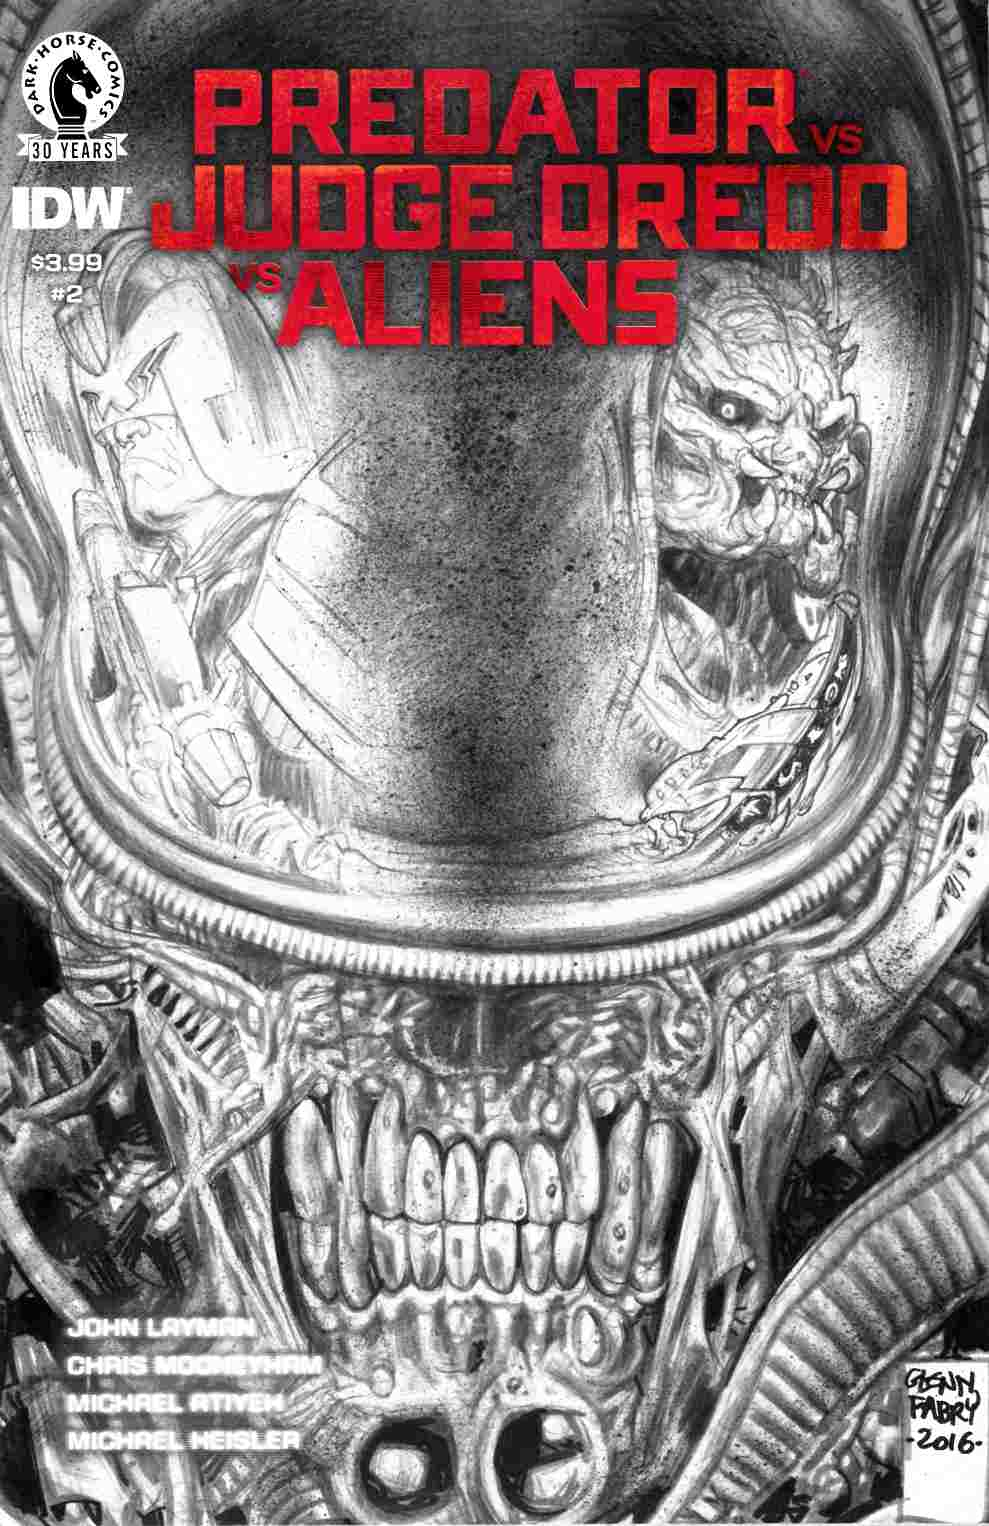 Predator vs Judge Dredd vs Aliens #2 Fabry Pencils Variant Cover [Dark Horse Comic]